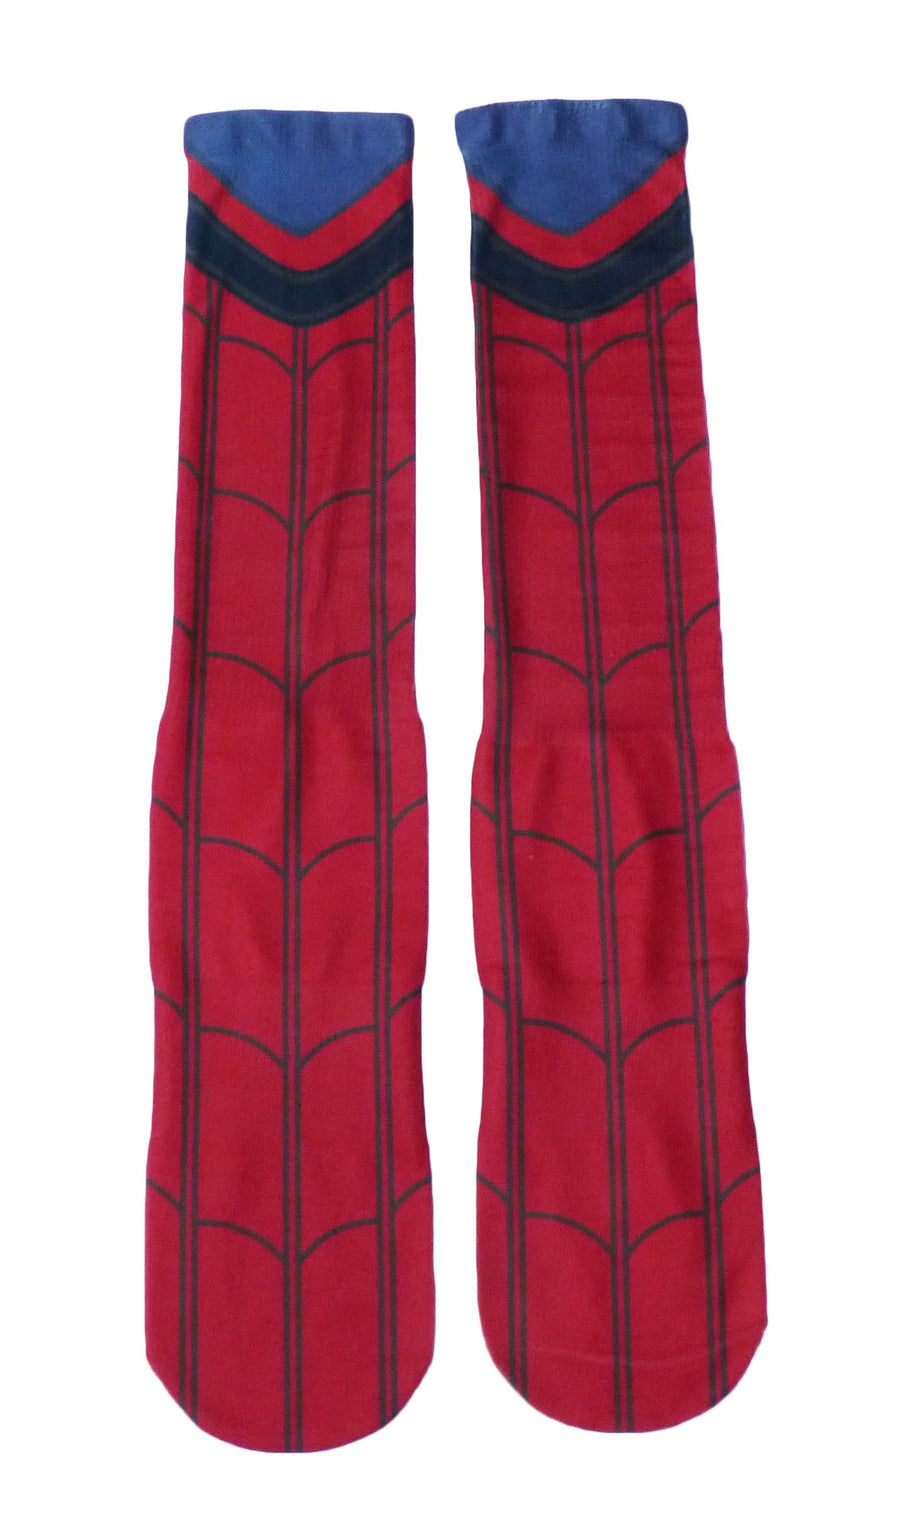 Web Hero Unisex Knee High Socks